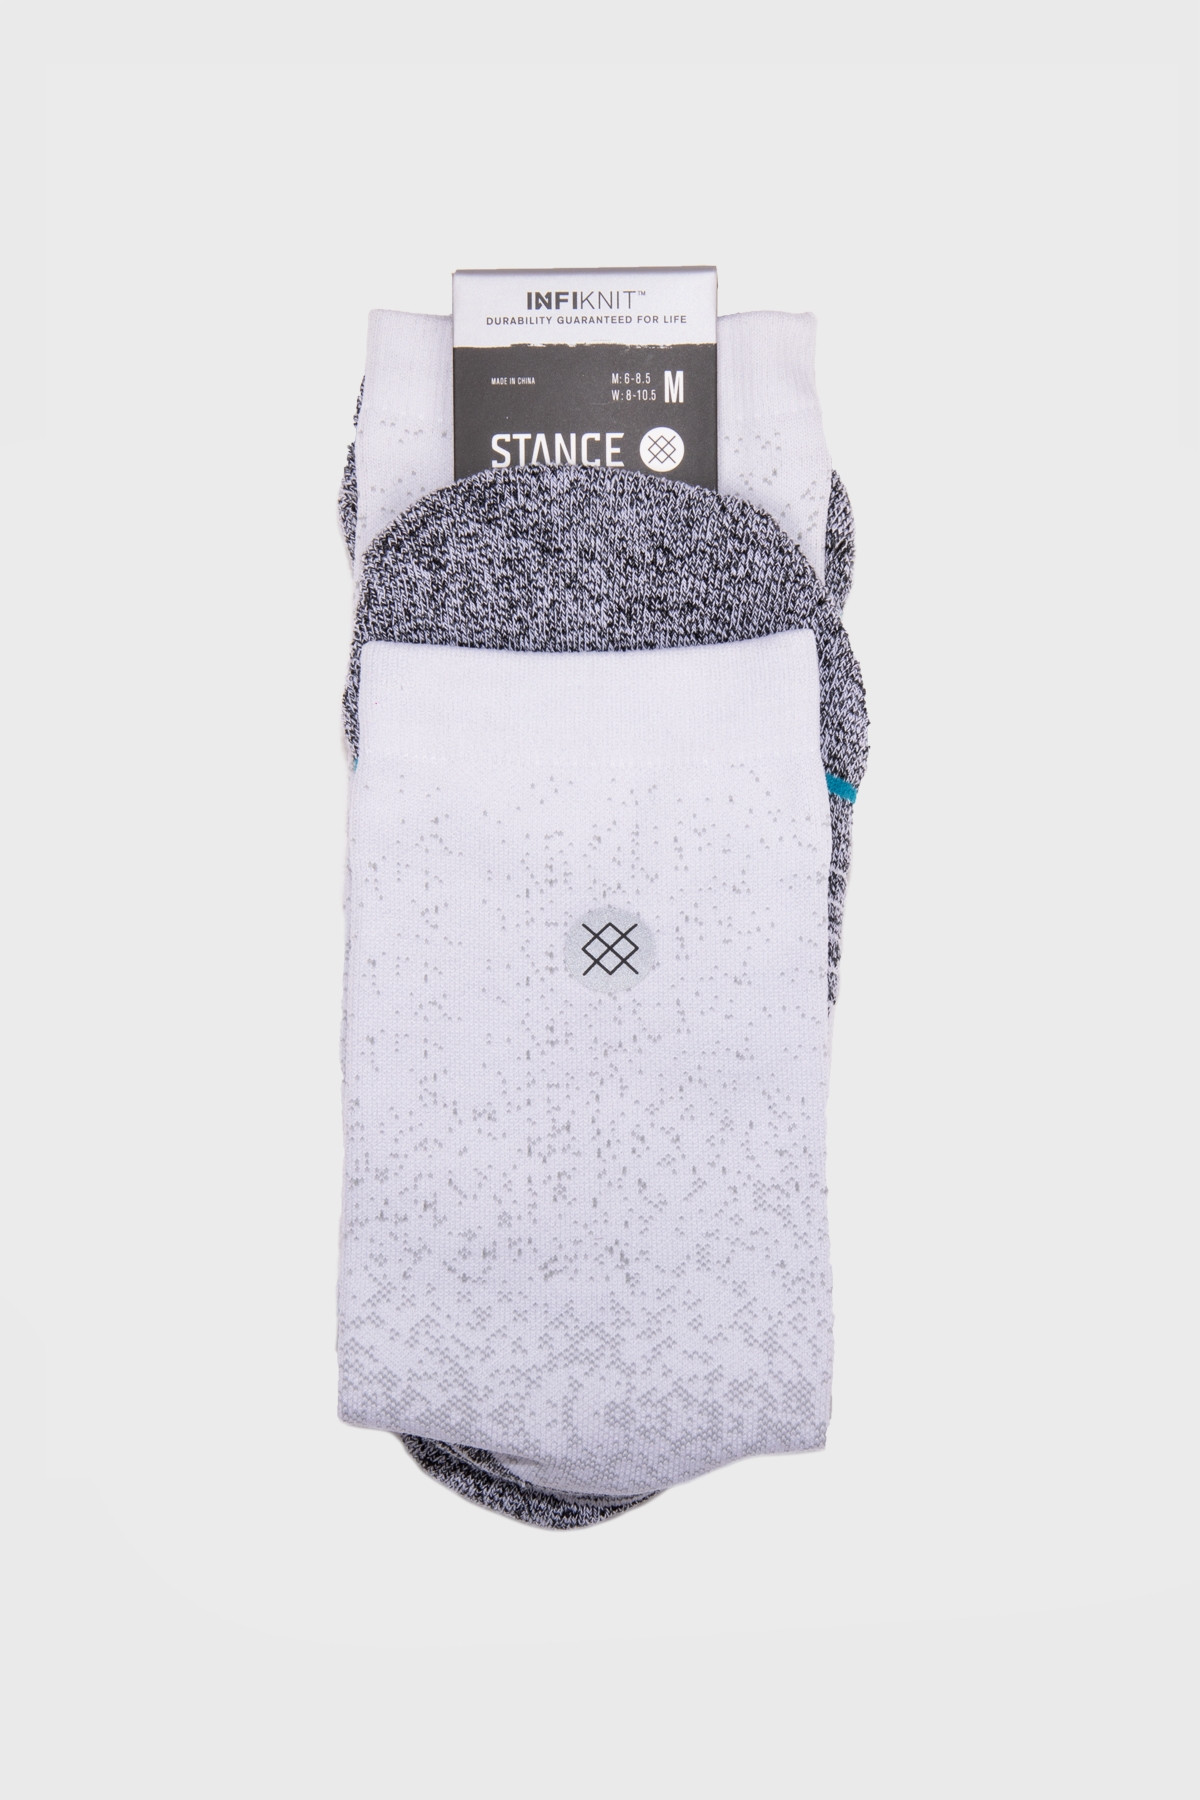 Stance - Run crew ST - White